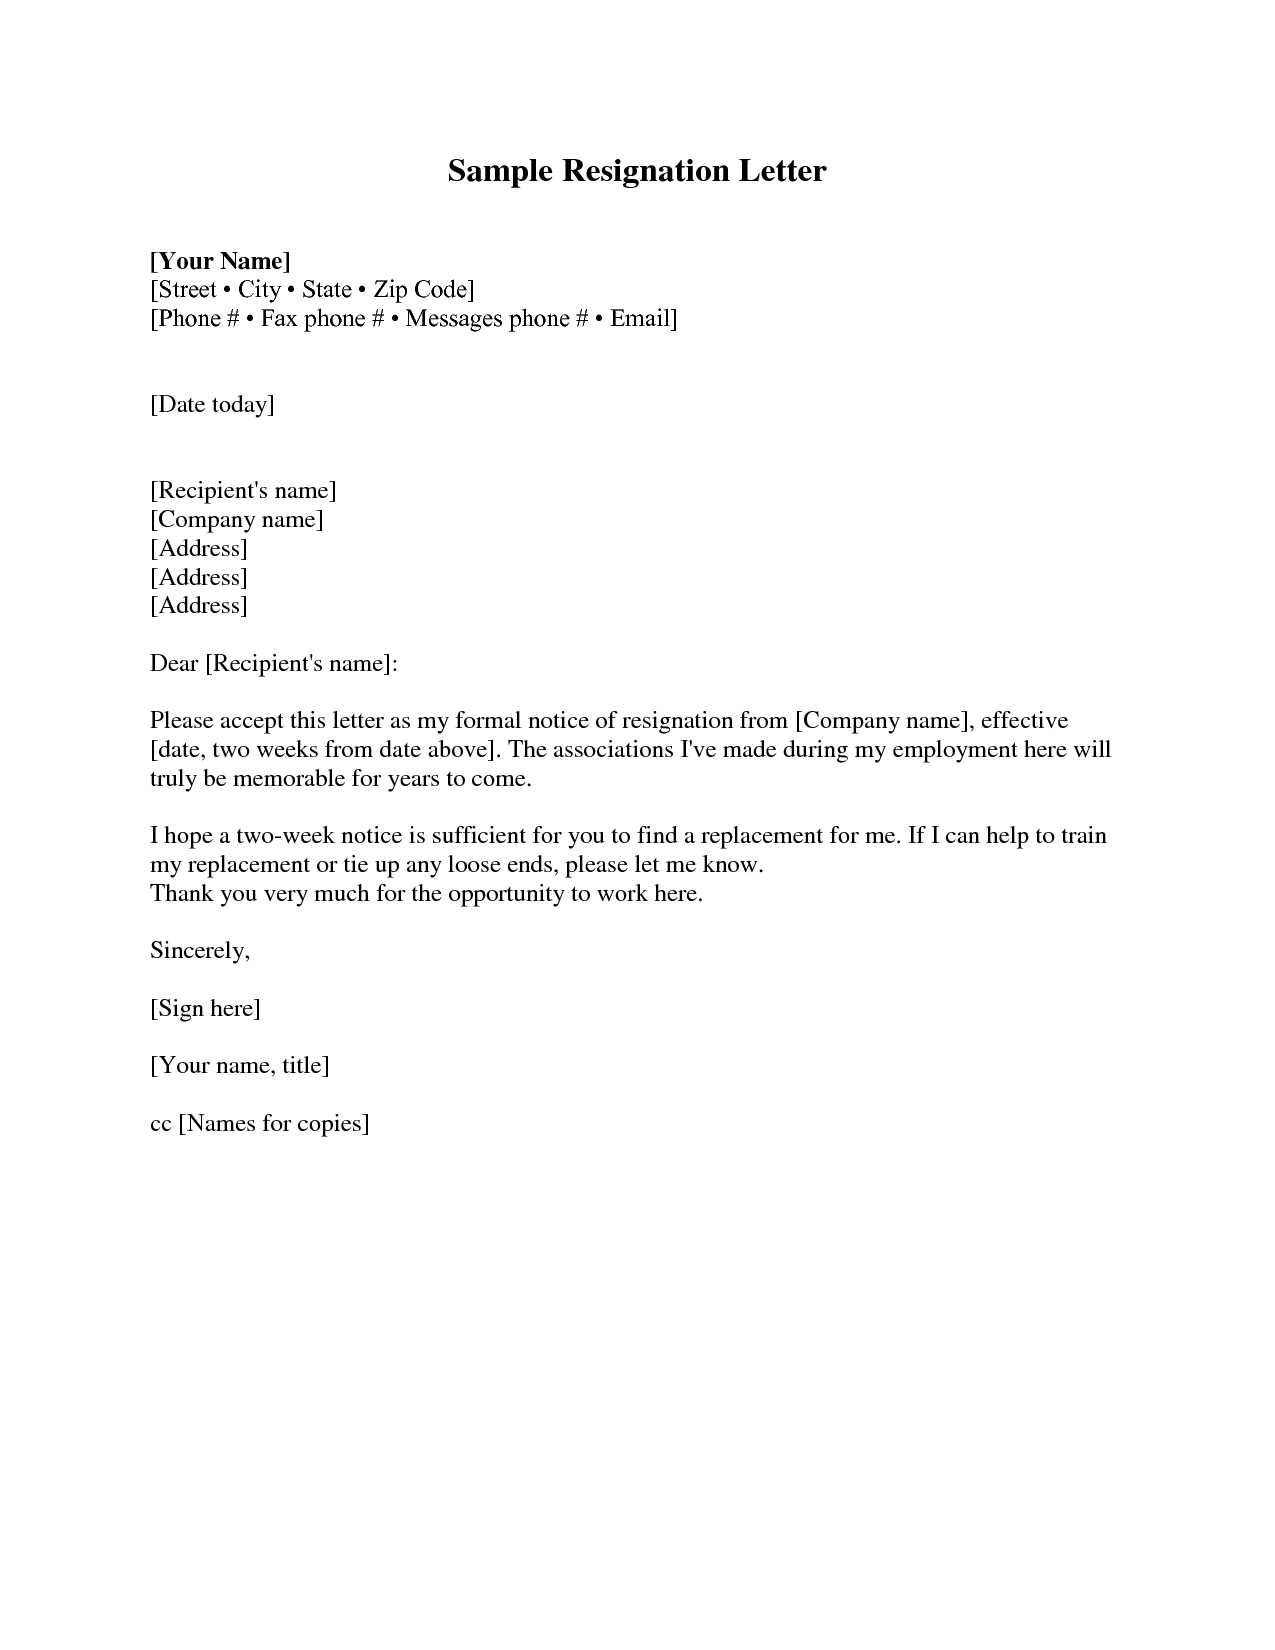 Resignation Letter Template Free - Resignation Letter Sample 2 Weeks Notice Free2img